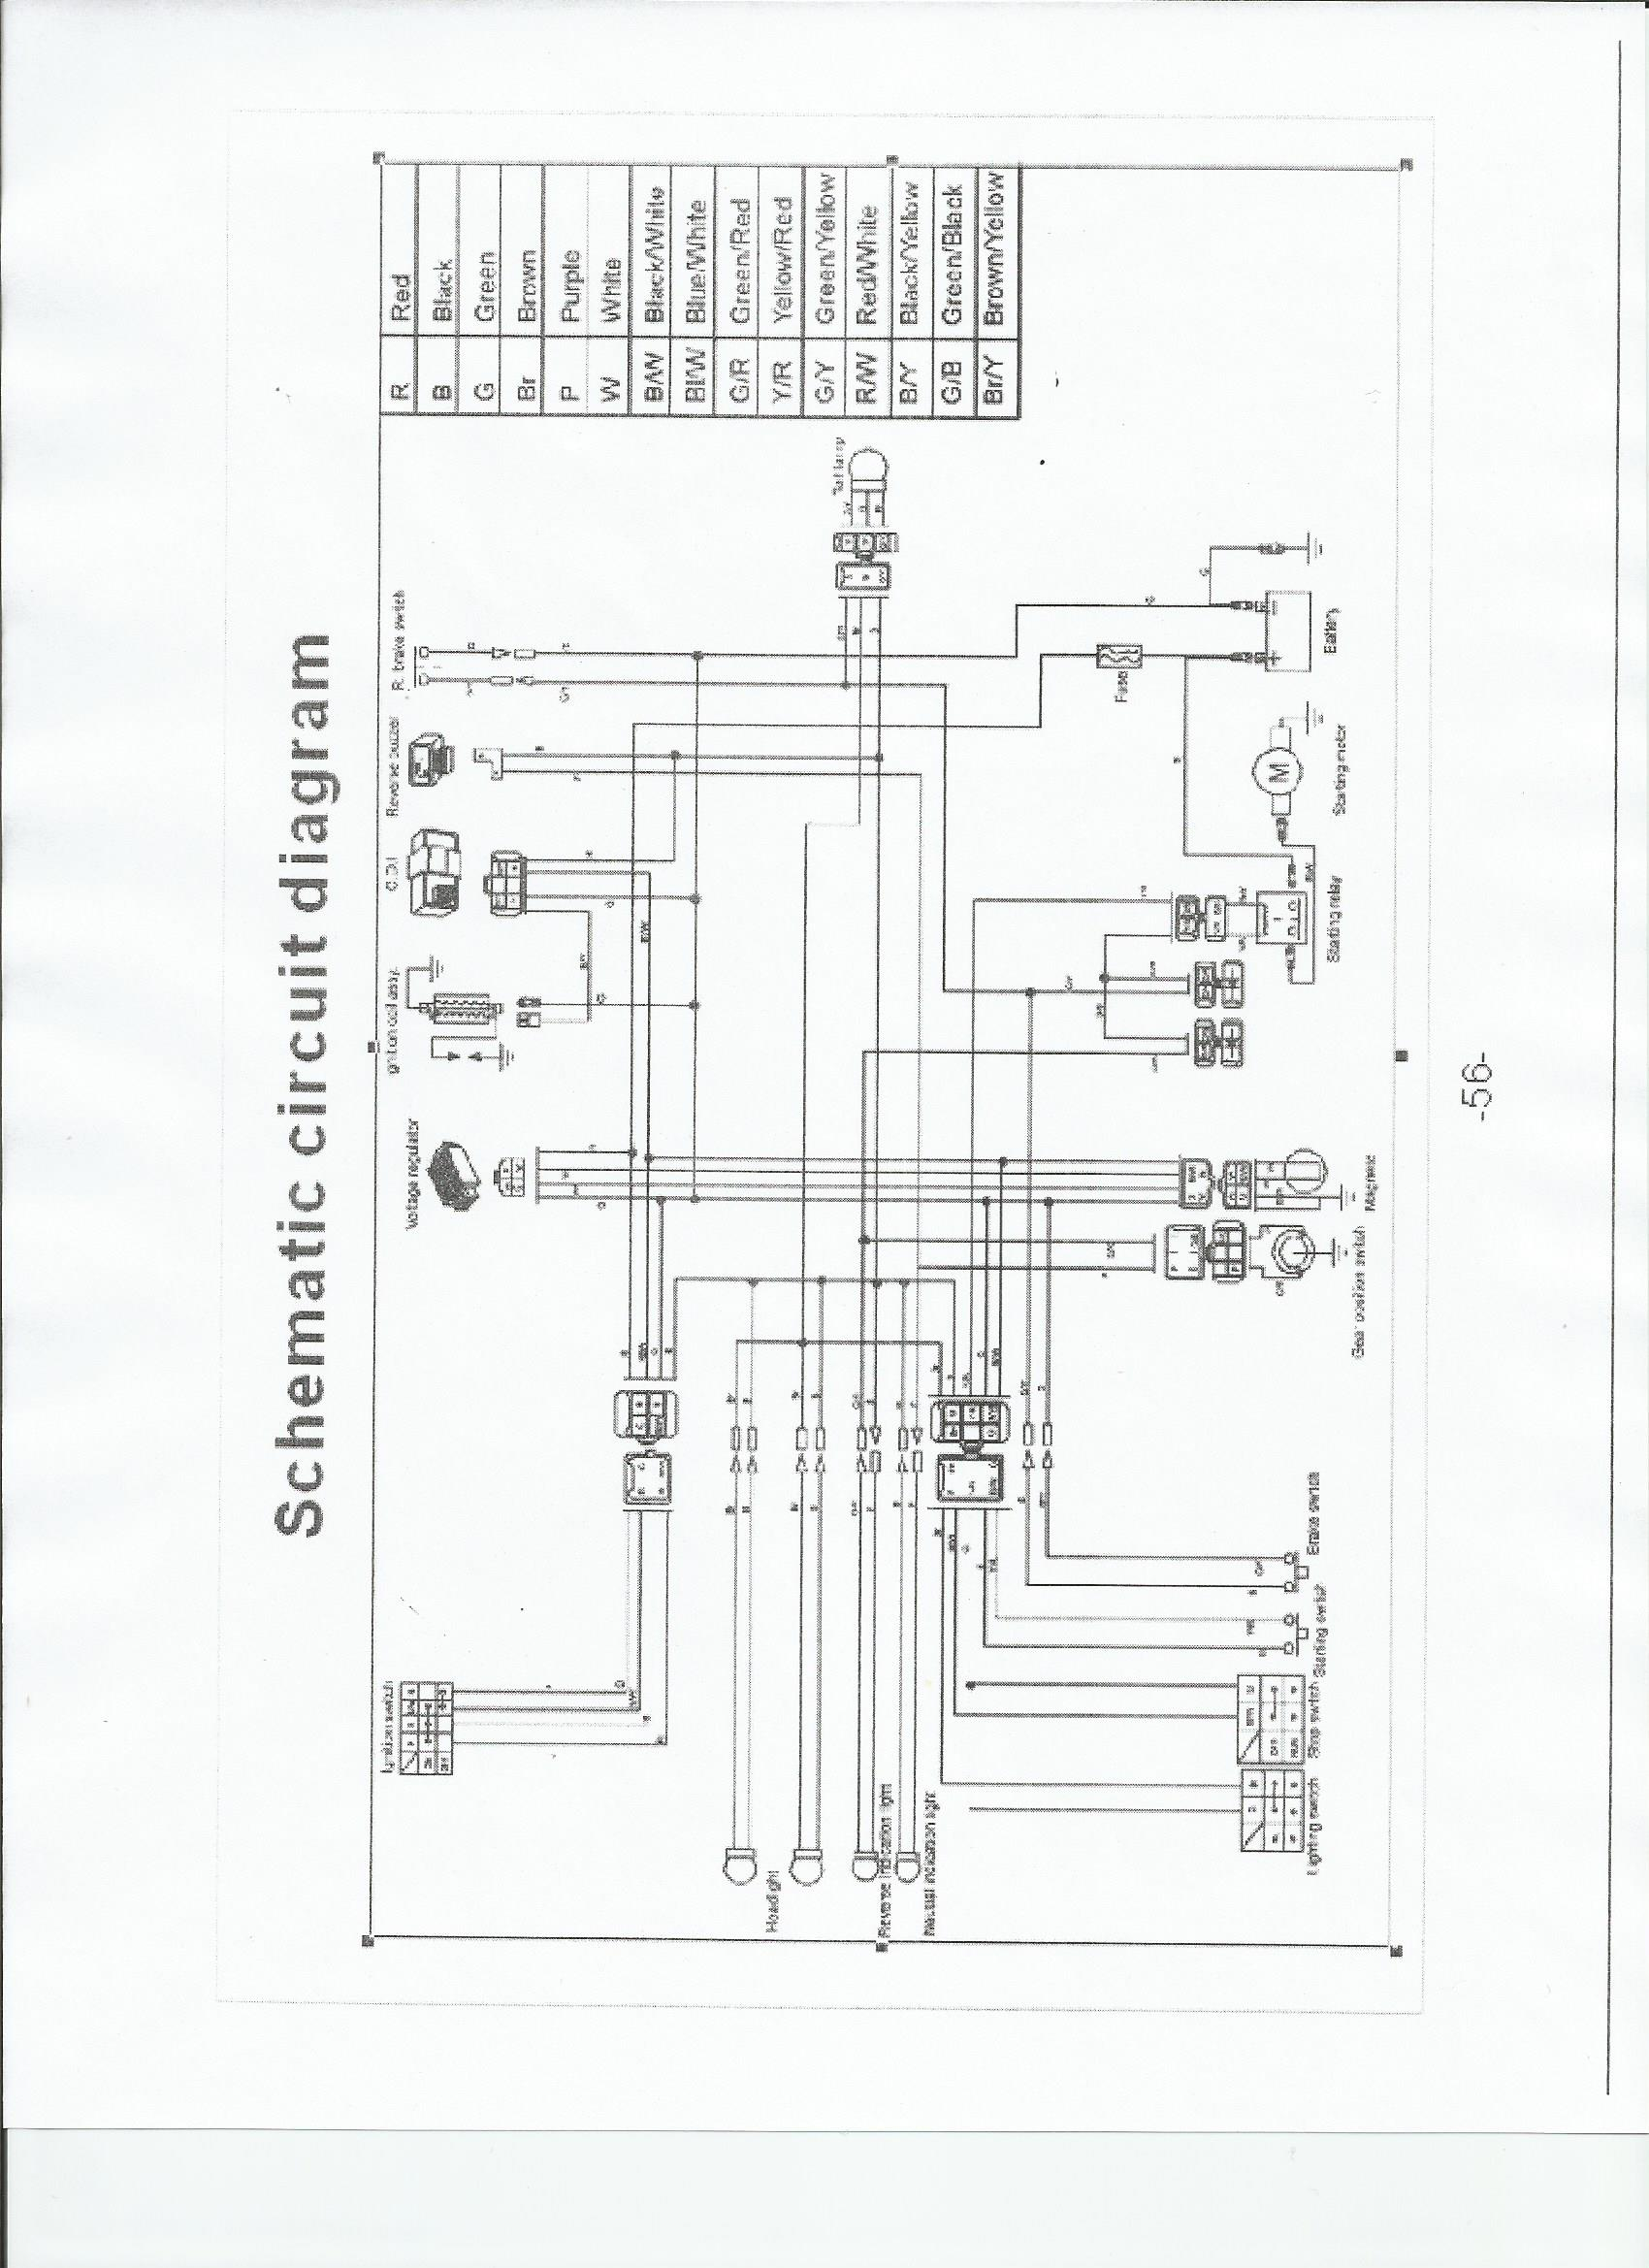 2005 z400 wiring diagram wiring diagrams2005 z400 wiring diagram